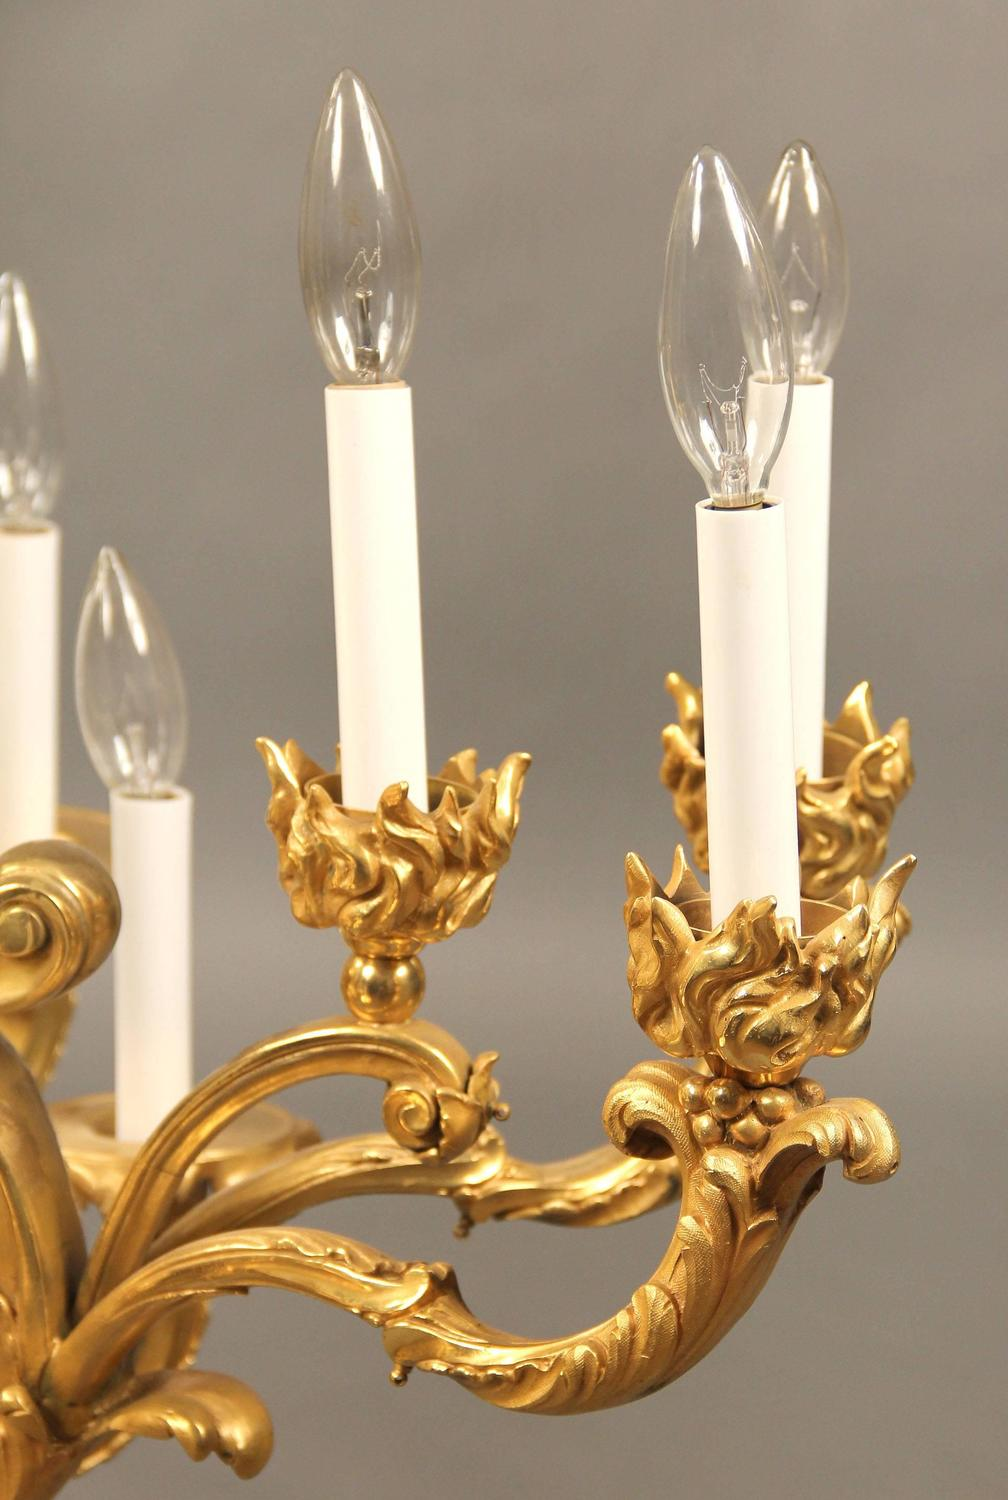 Fantastic Quality Late 19th Century Gilt Bronze Chandelier For Sale At 1stdibs